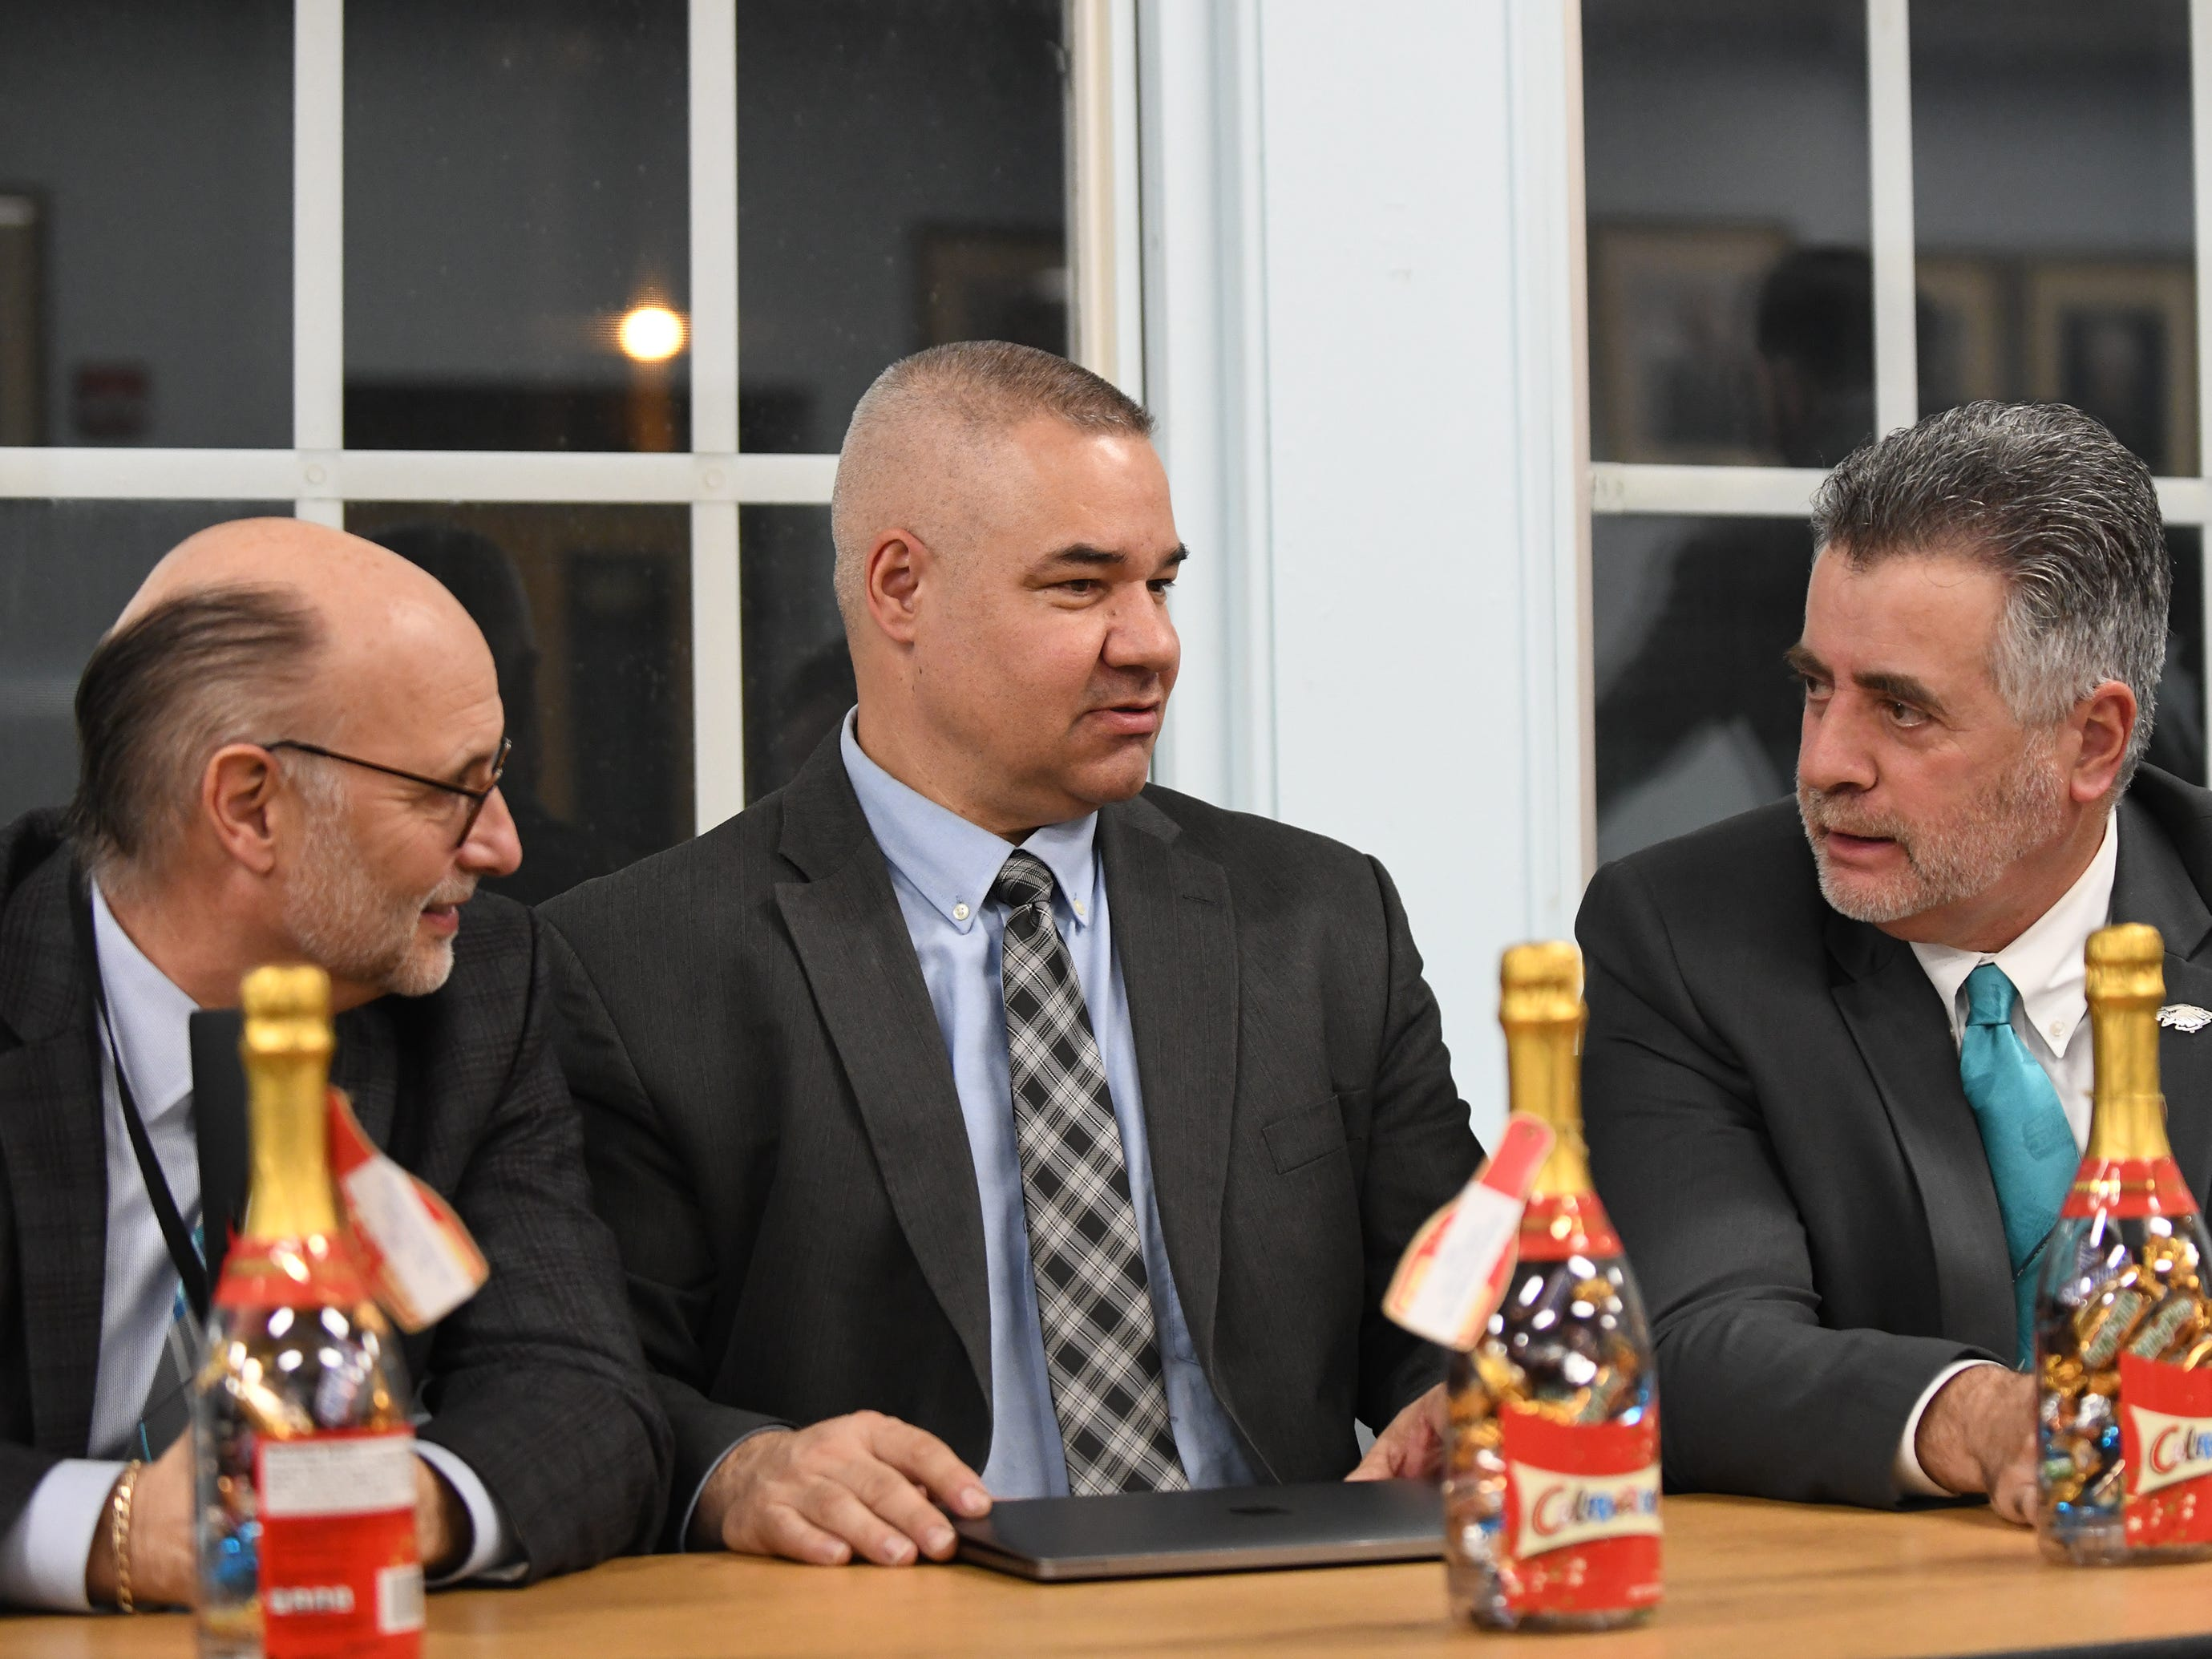 The Vineland Board of Education held a reorganization meeting on Wednesday, January 2, 2019.